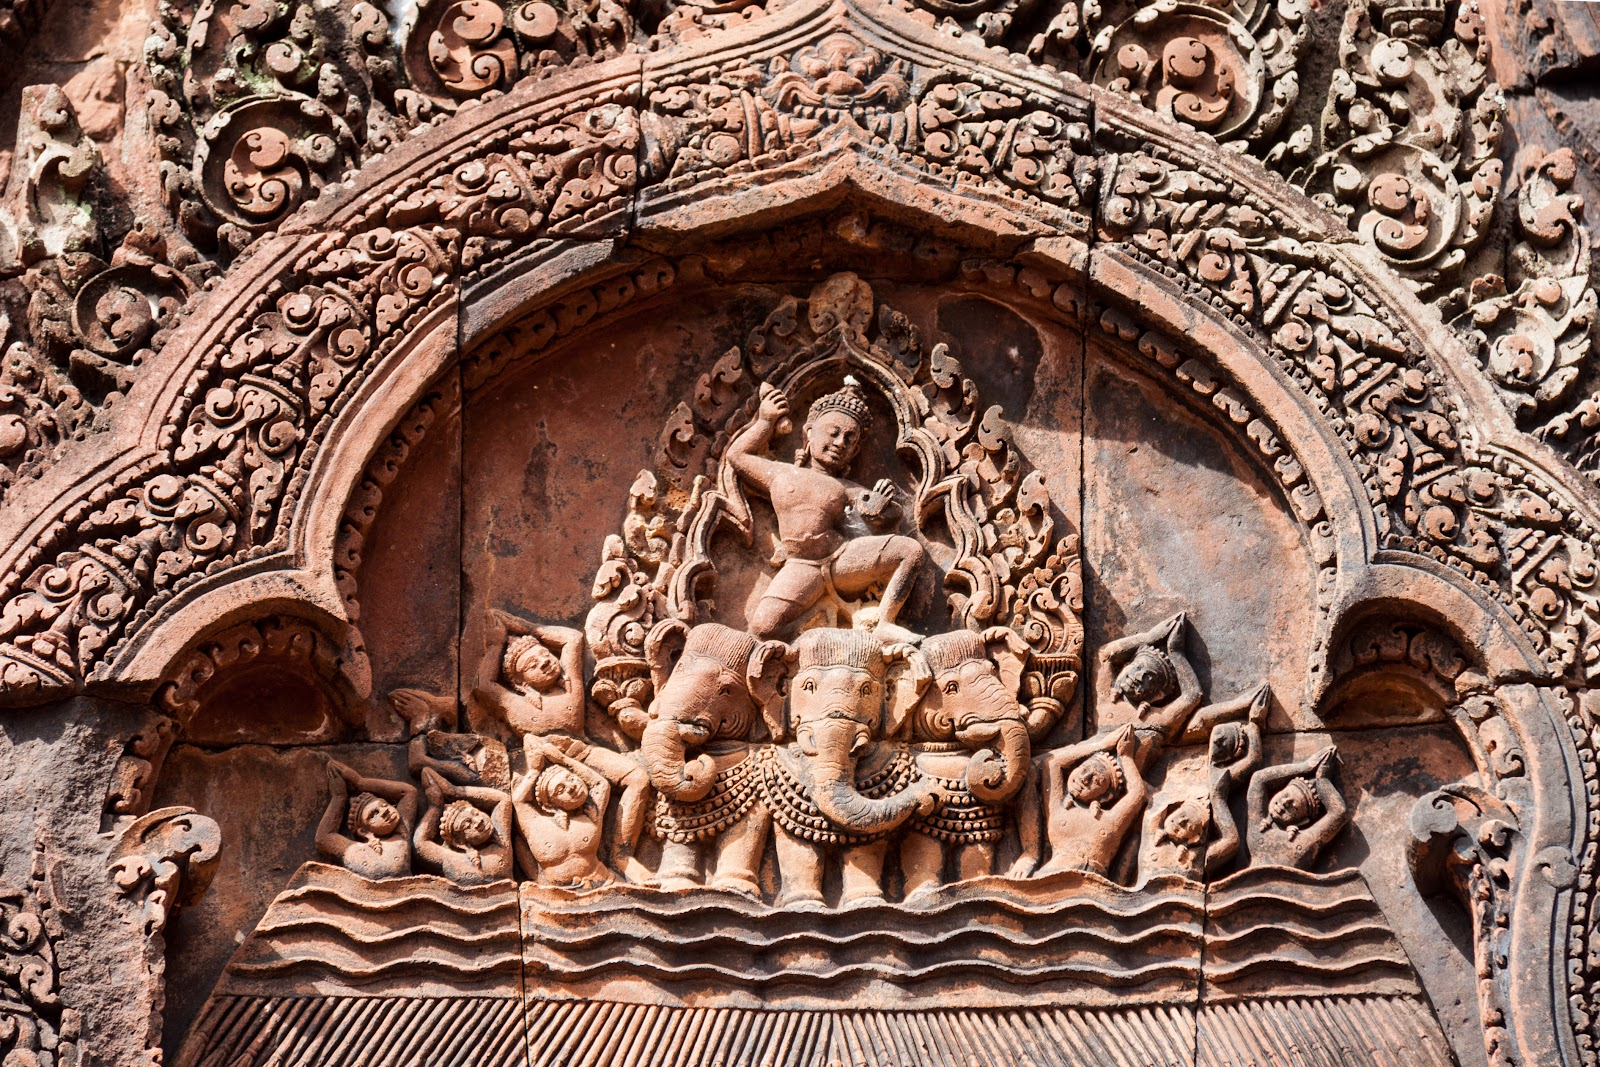 https://upload.wikimedia.org/wikipedia/commons/c/c6/Angkor_SiemReap_Cambodia_Banteay_Srei-Relief-01.jpg